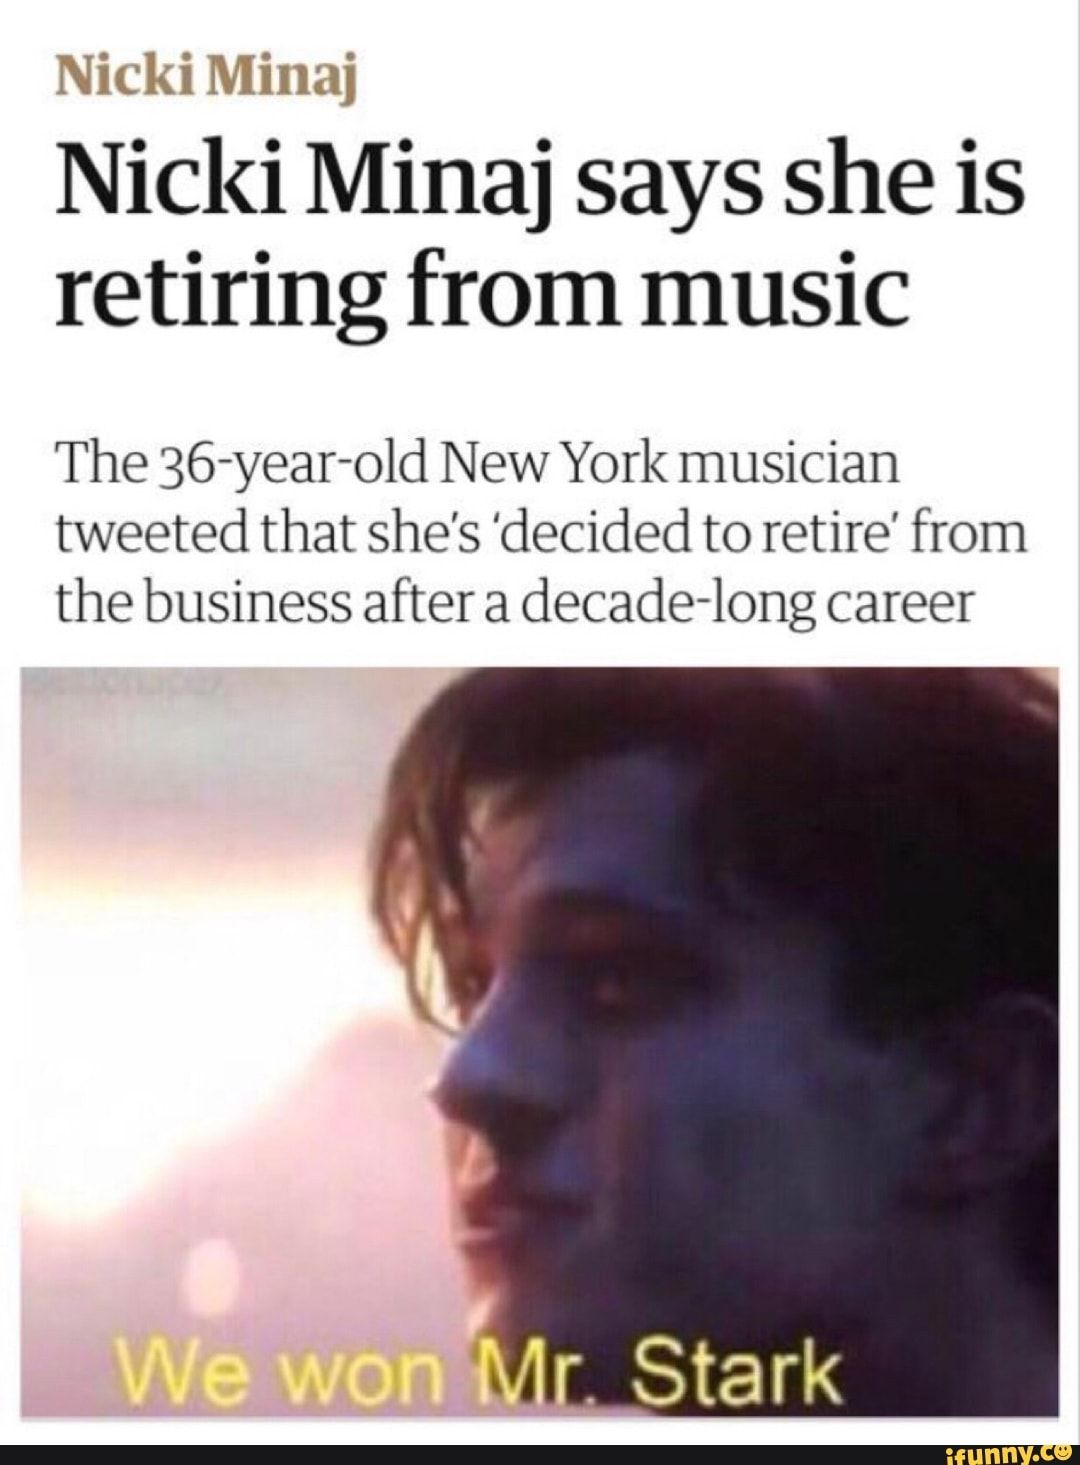 Nicki Minaj Nicki Minaj Says She Is Retiring From Music The 36 Year Old New York Musician Tweeted That She S Decided To Retire From The Business After A Decad Nicki Minaj Memes Musician